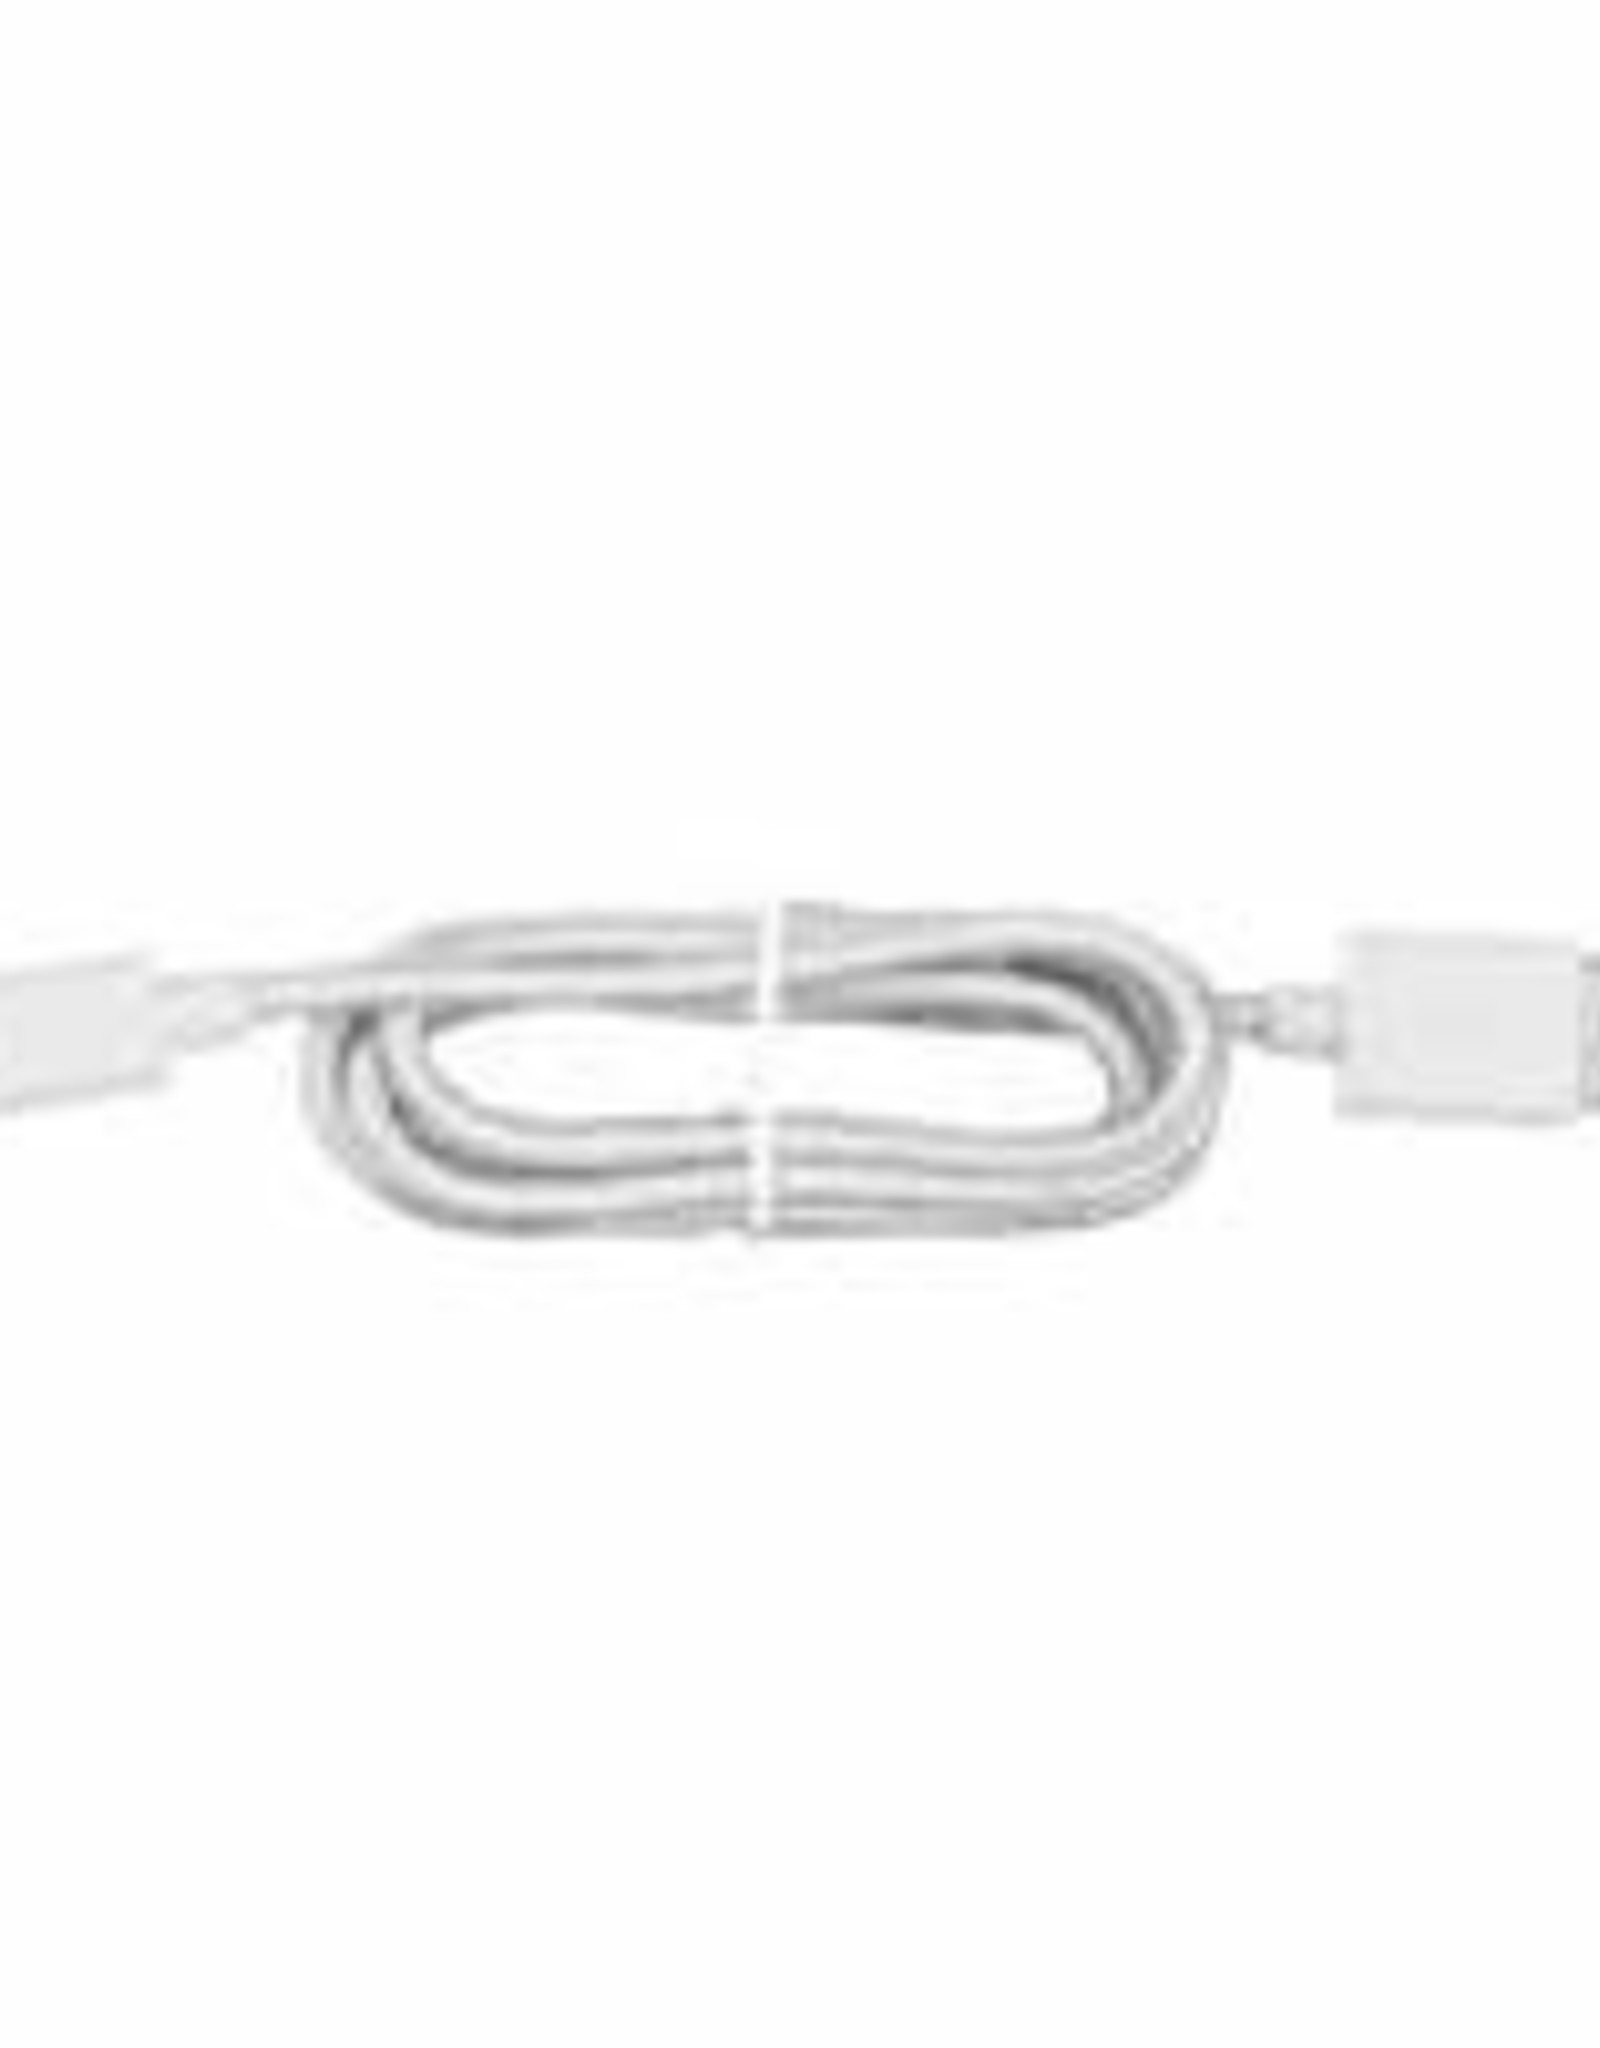 Apple Lightning USB cable 1.0m with official Apple lic